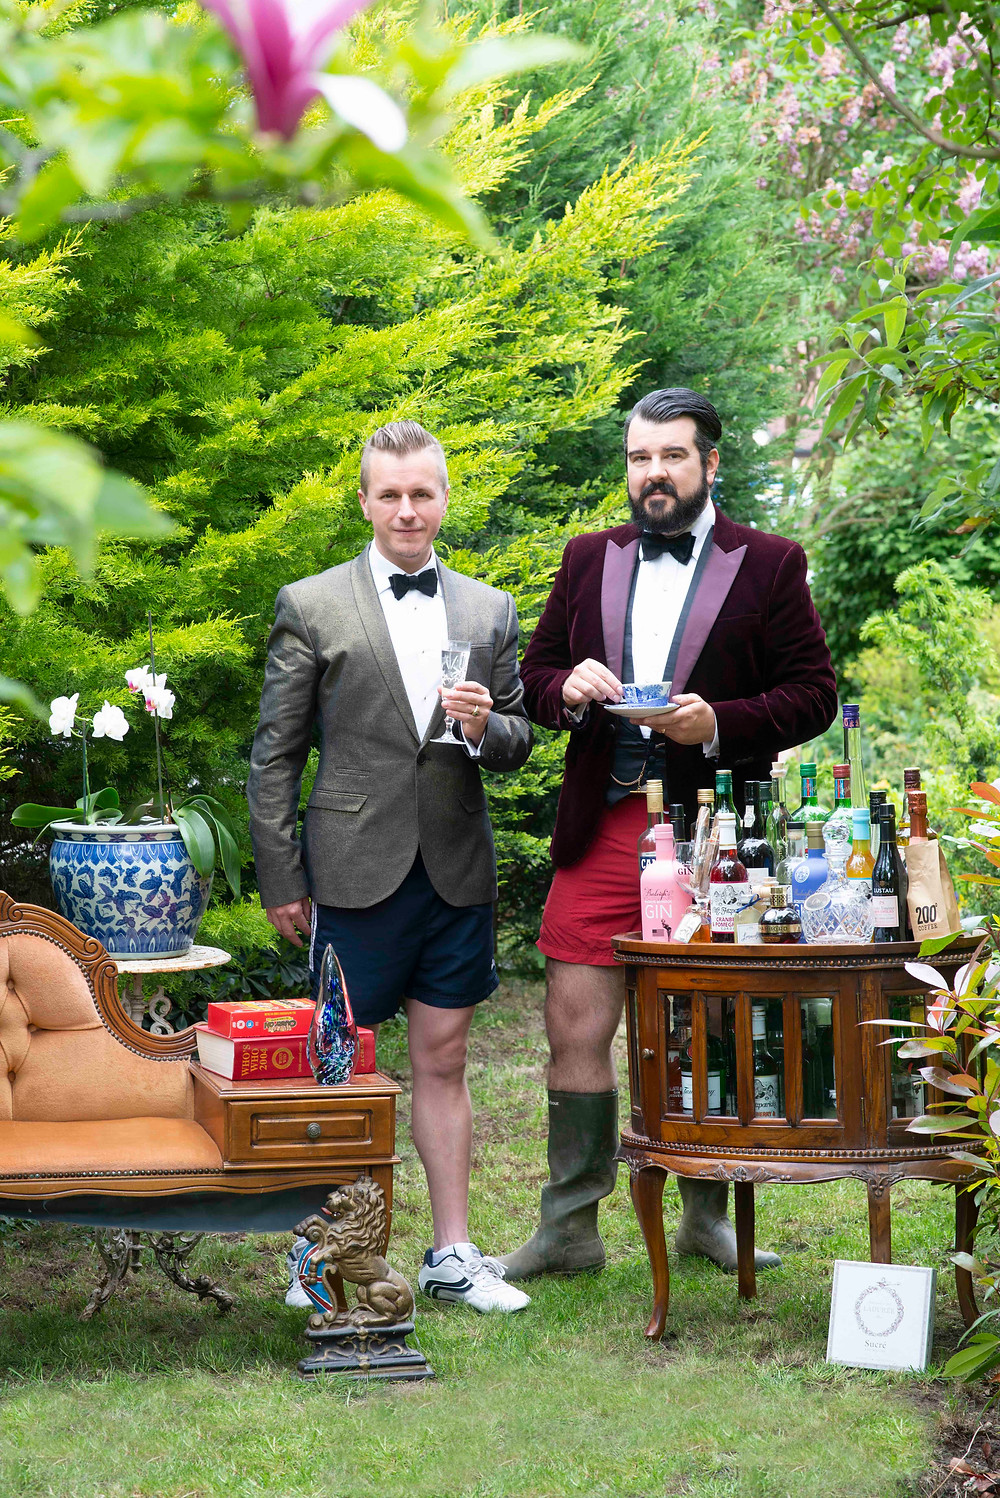 Two men wearing suit jackets and shorts standing in the garden drinking cocktails